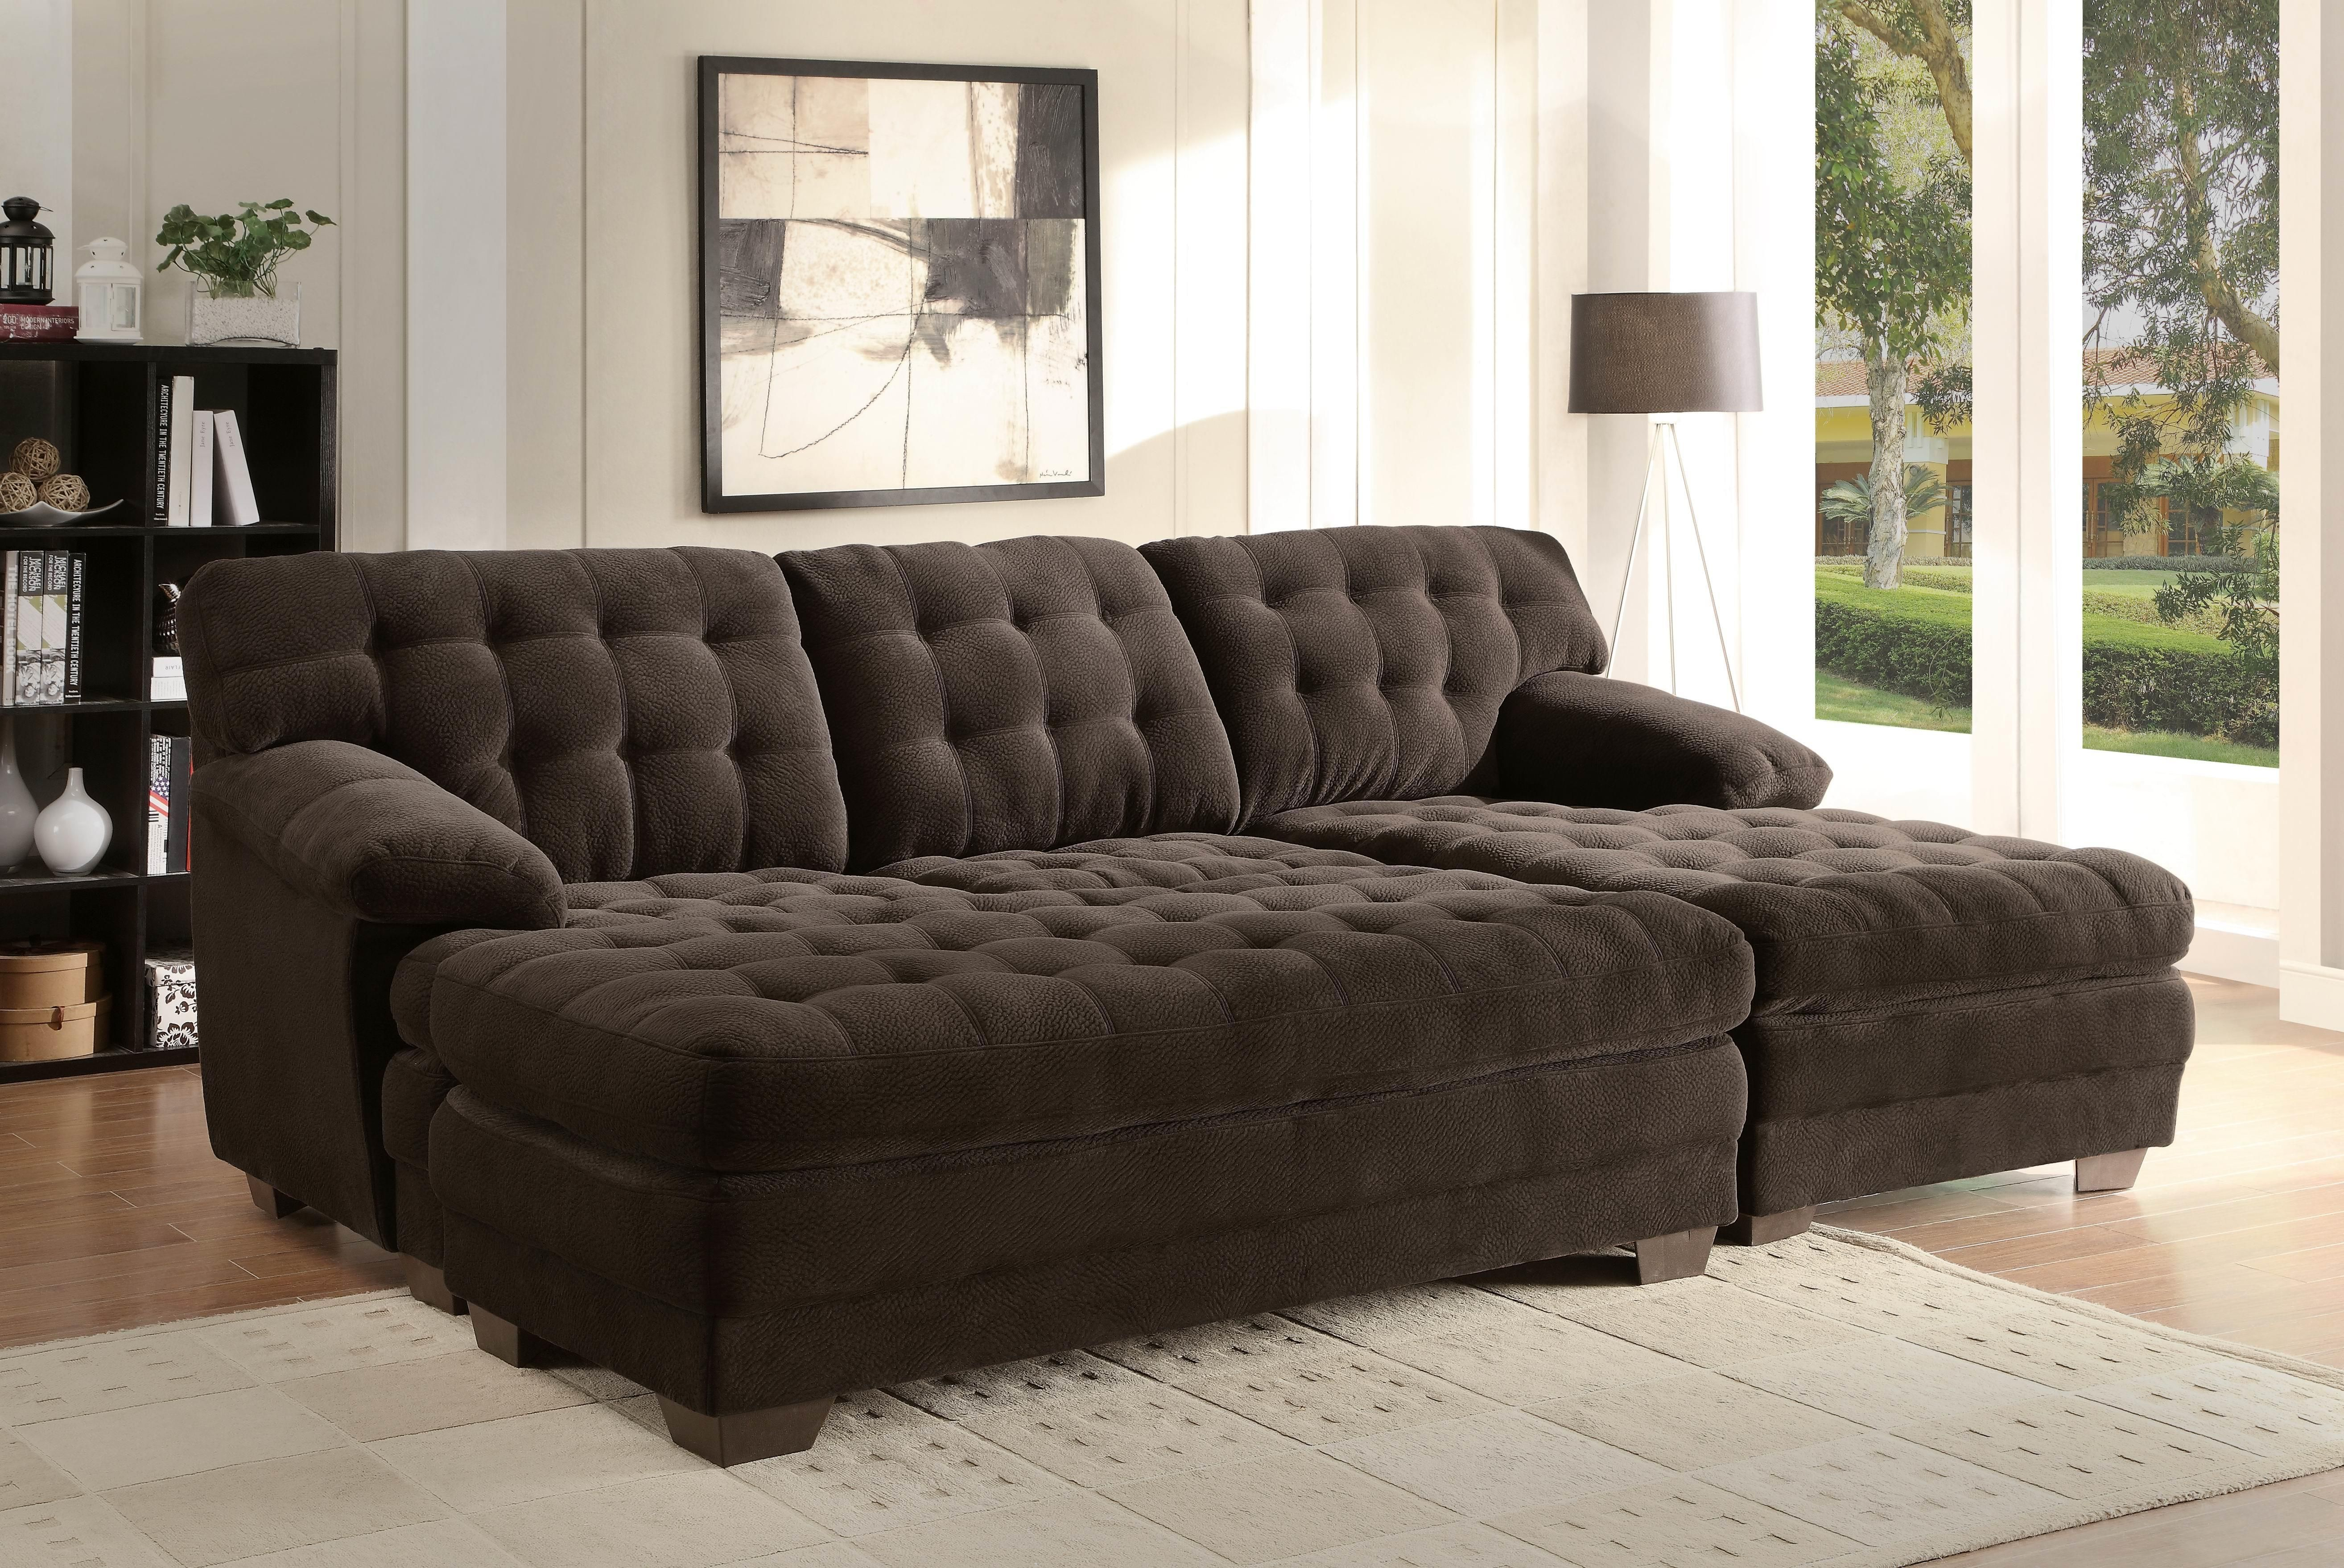 Extra Wide Sofa | Sectional sofa with chaise, Sectional ...